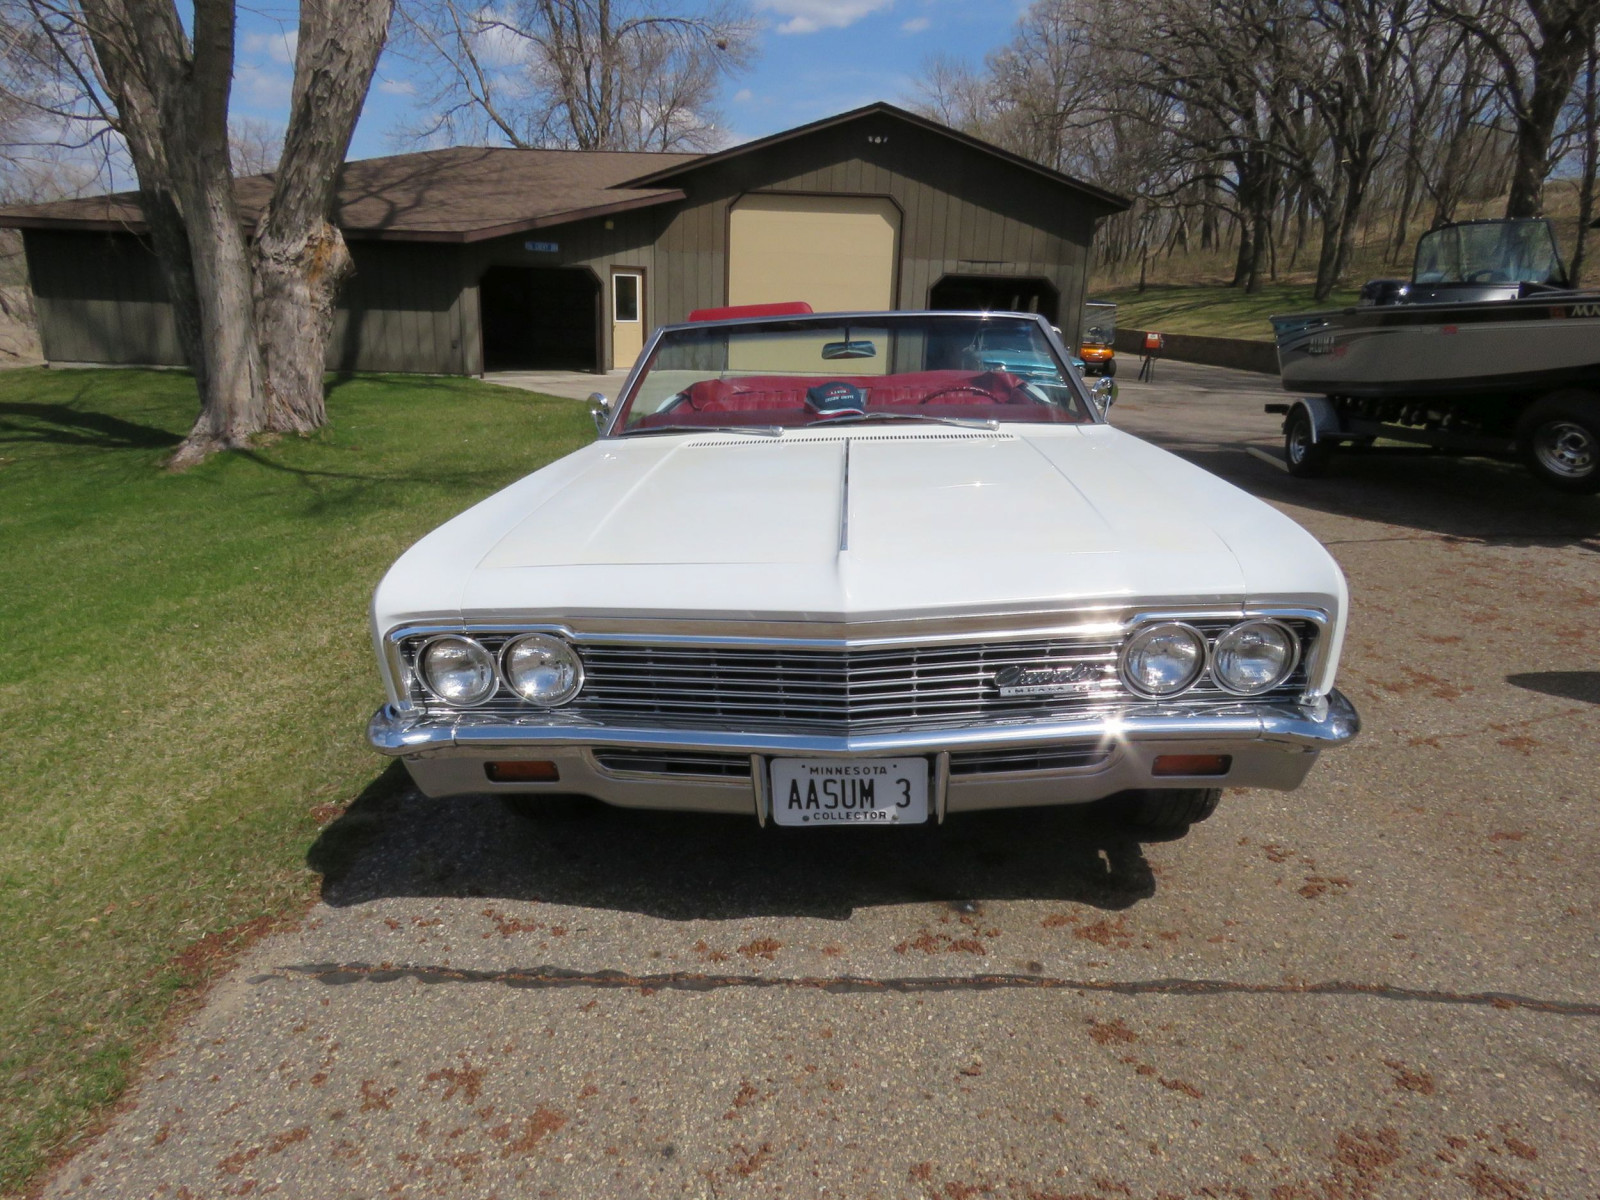 1966 Chevrolet Impala SS Convertible - Image 2